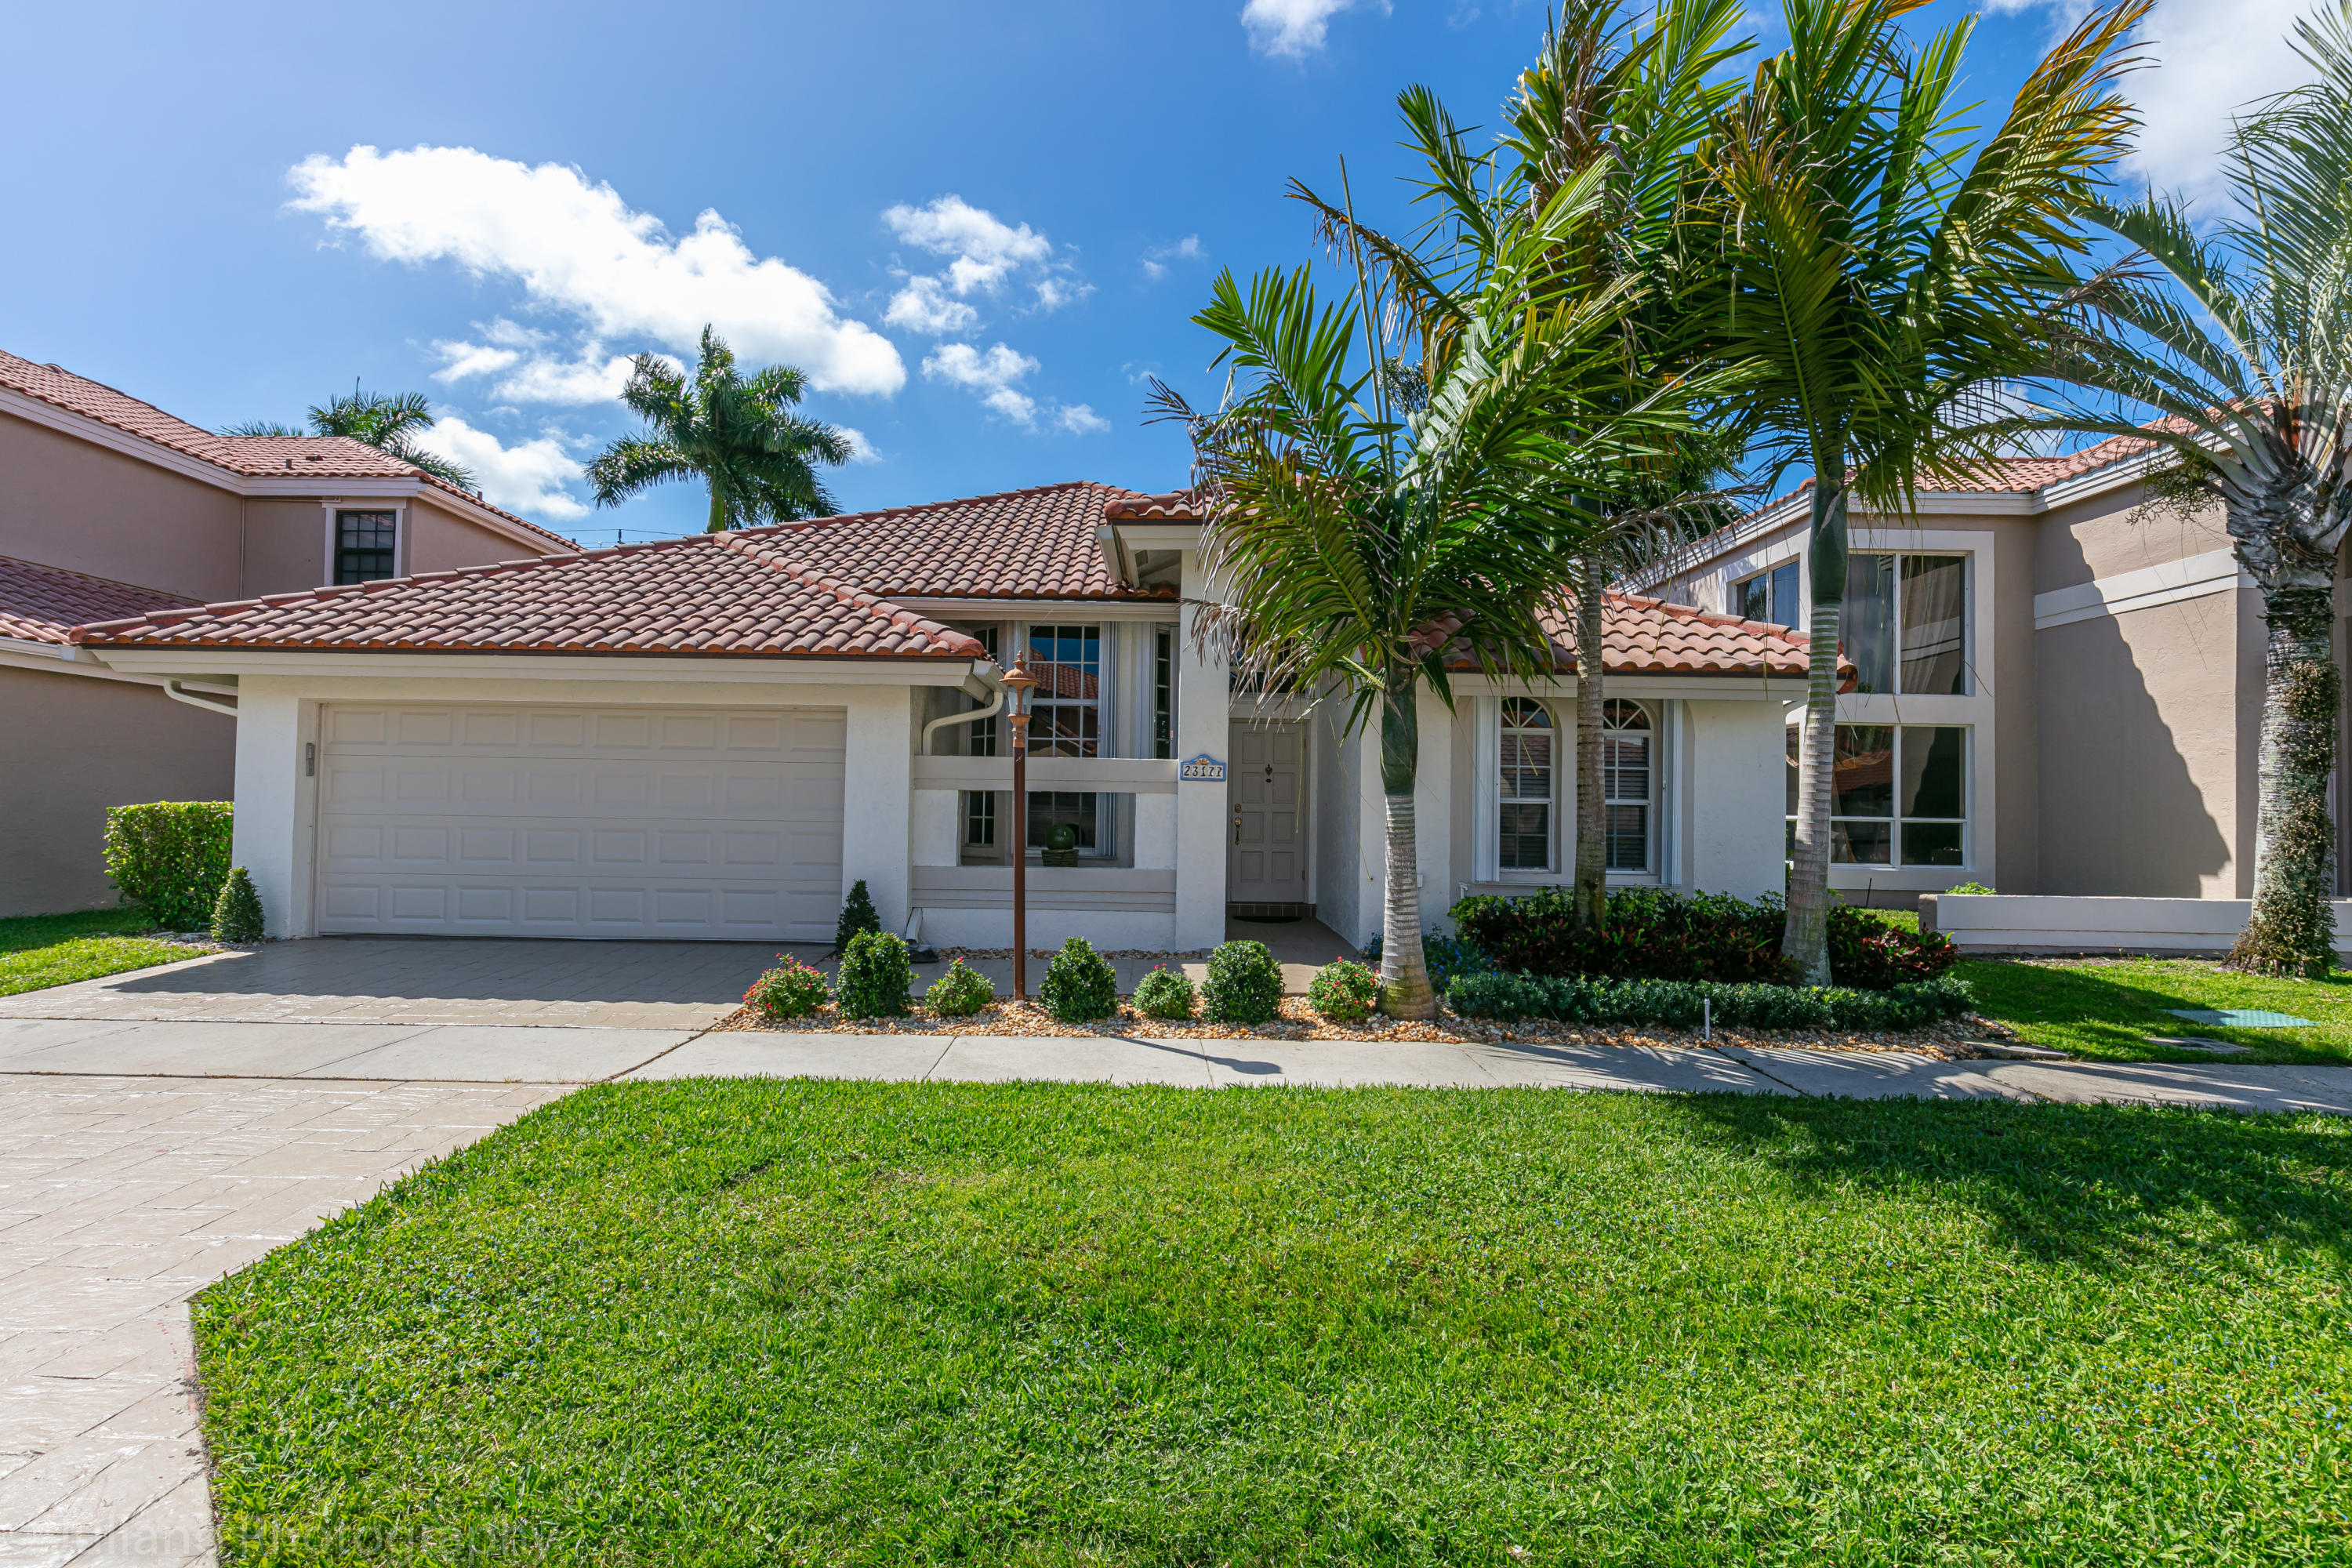 Home for sale in COLONY AT LERMITAGE Boca Raton Florida